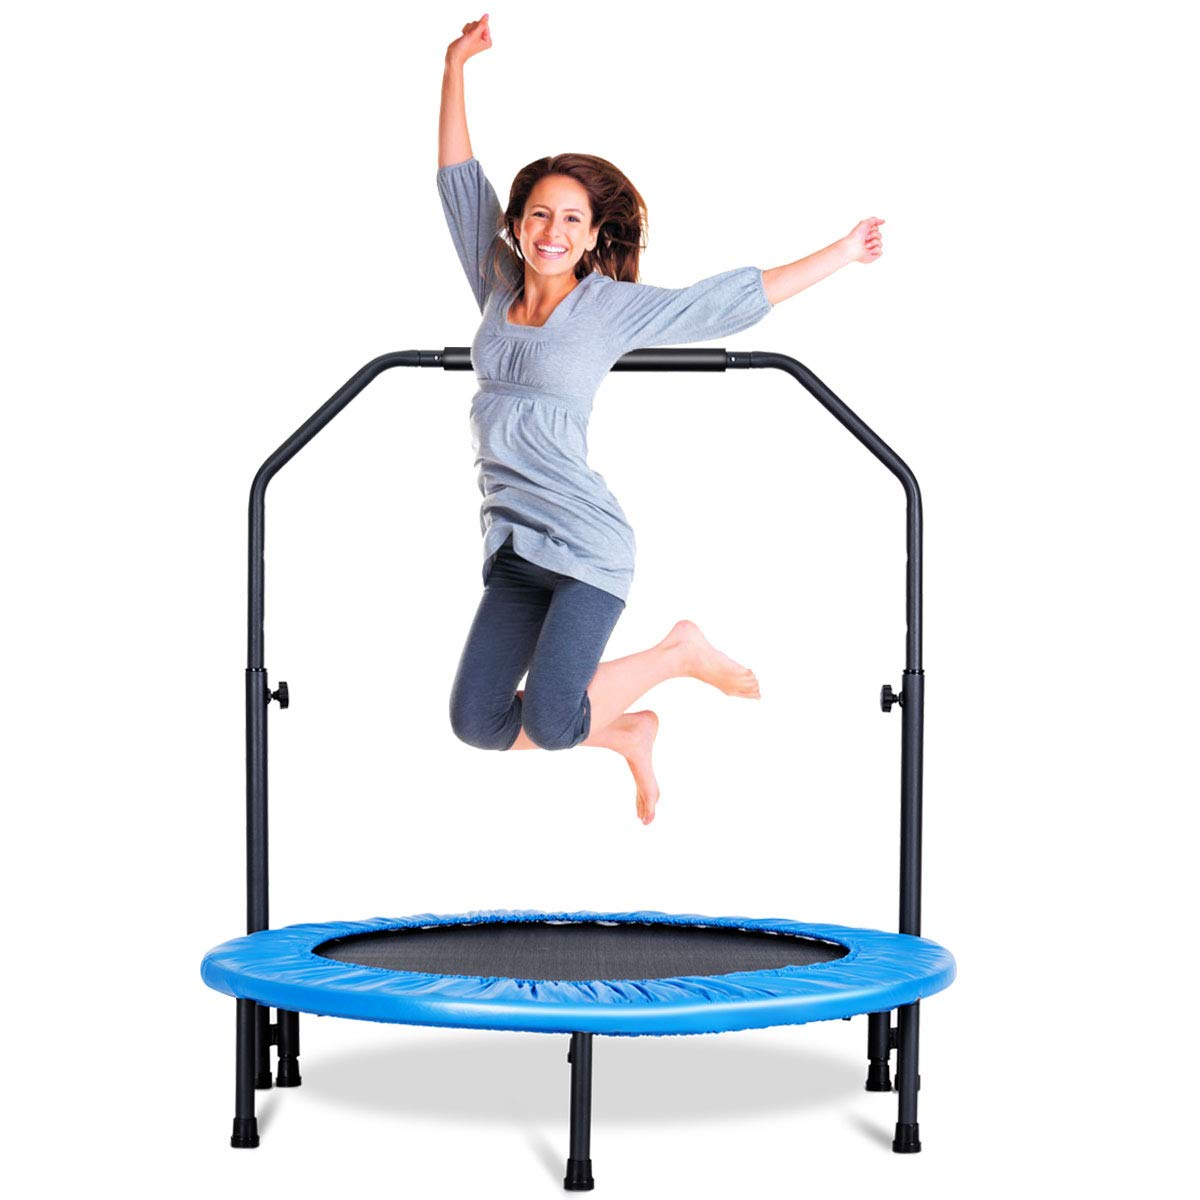 Giantex Mini Rebounder Trampoline with Handle Rail Bouncing Workout Fitness Exercise